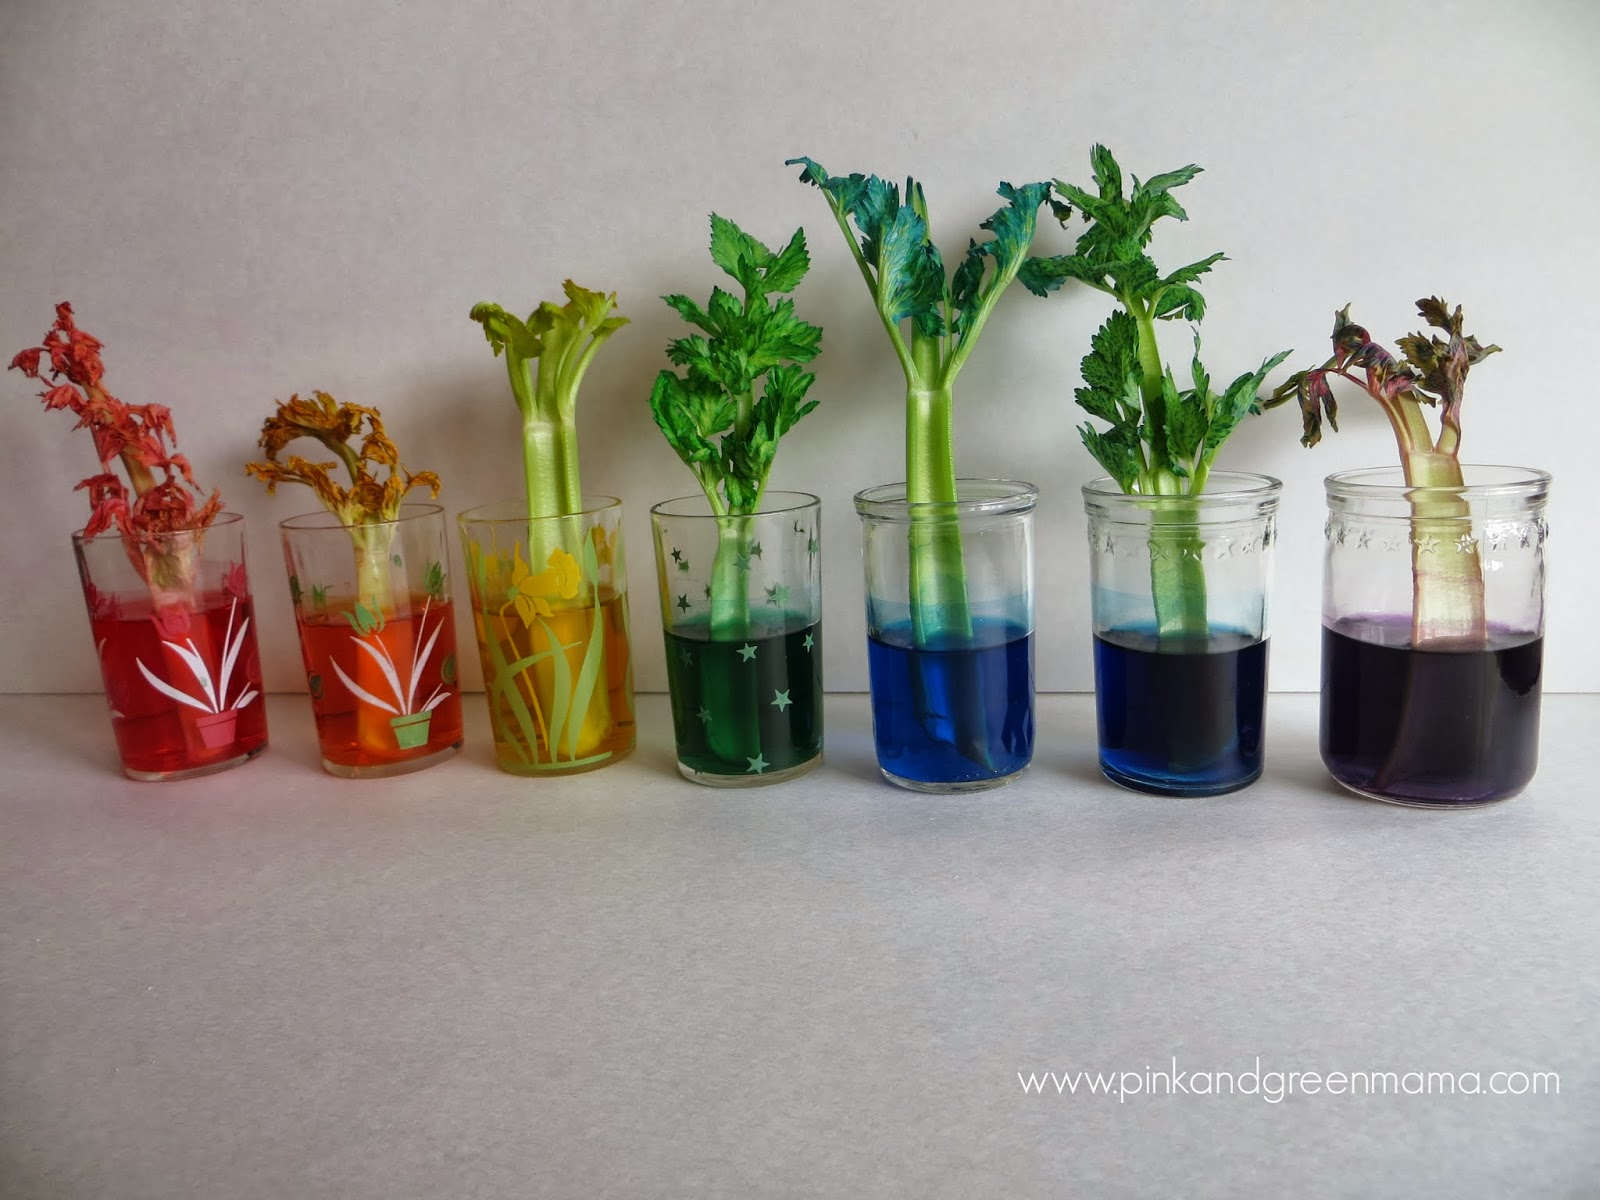 Celery Stalk Experiment With Food Coloring Images & Pictures - Becuo